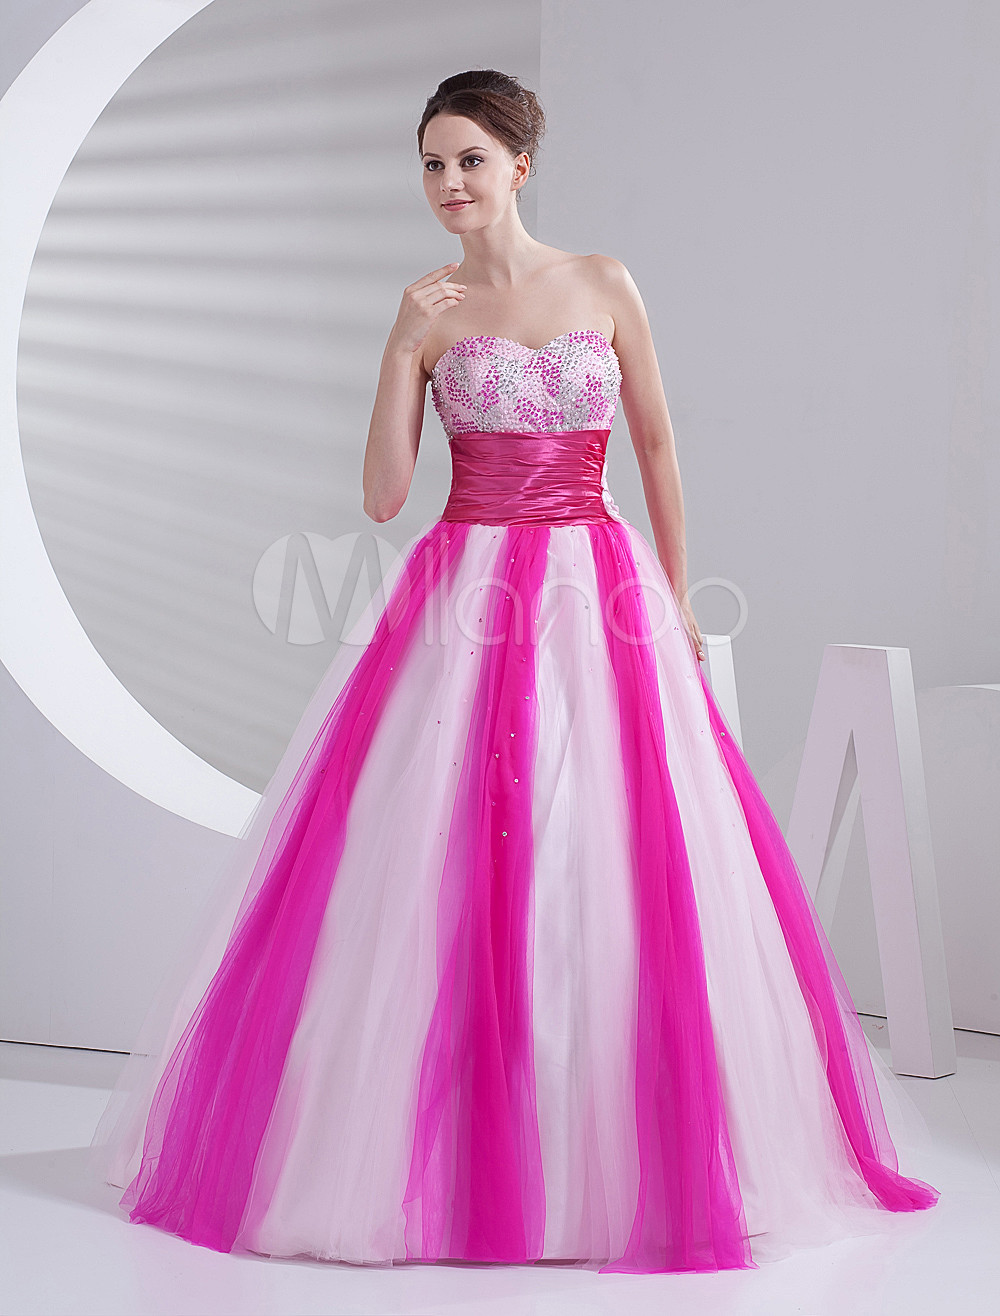 Sweet Pink Soft Tulle Strapless Floor Length Princess Prom Dress ...